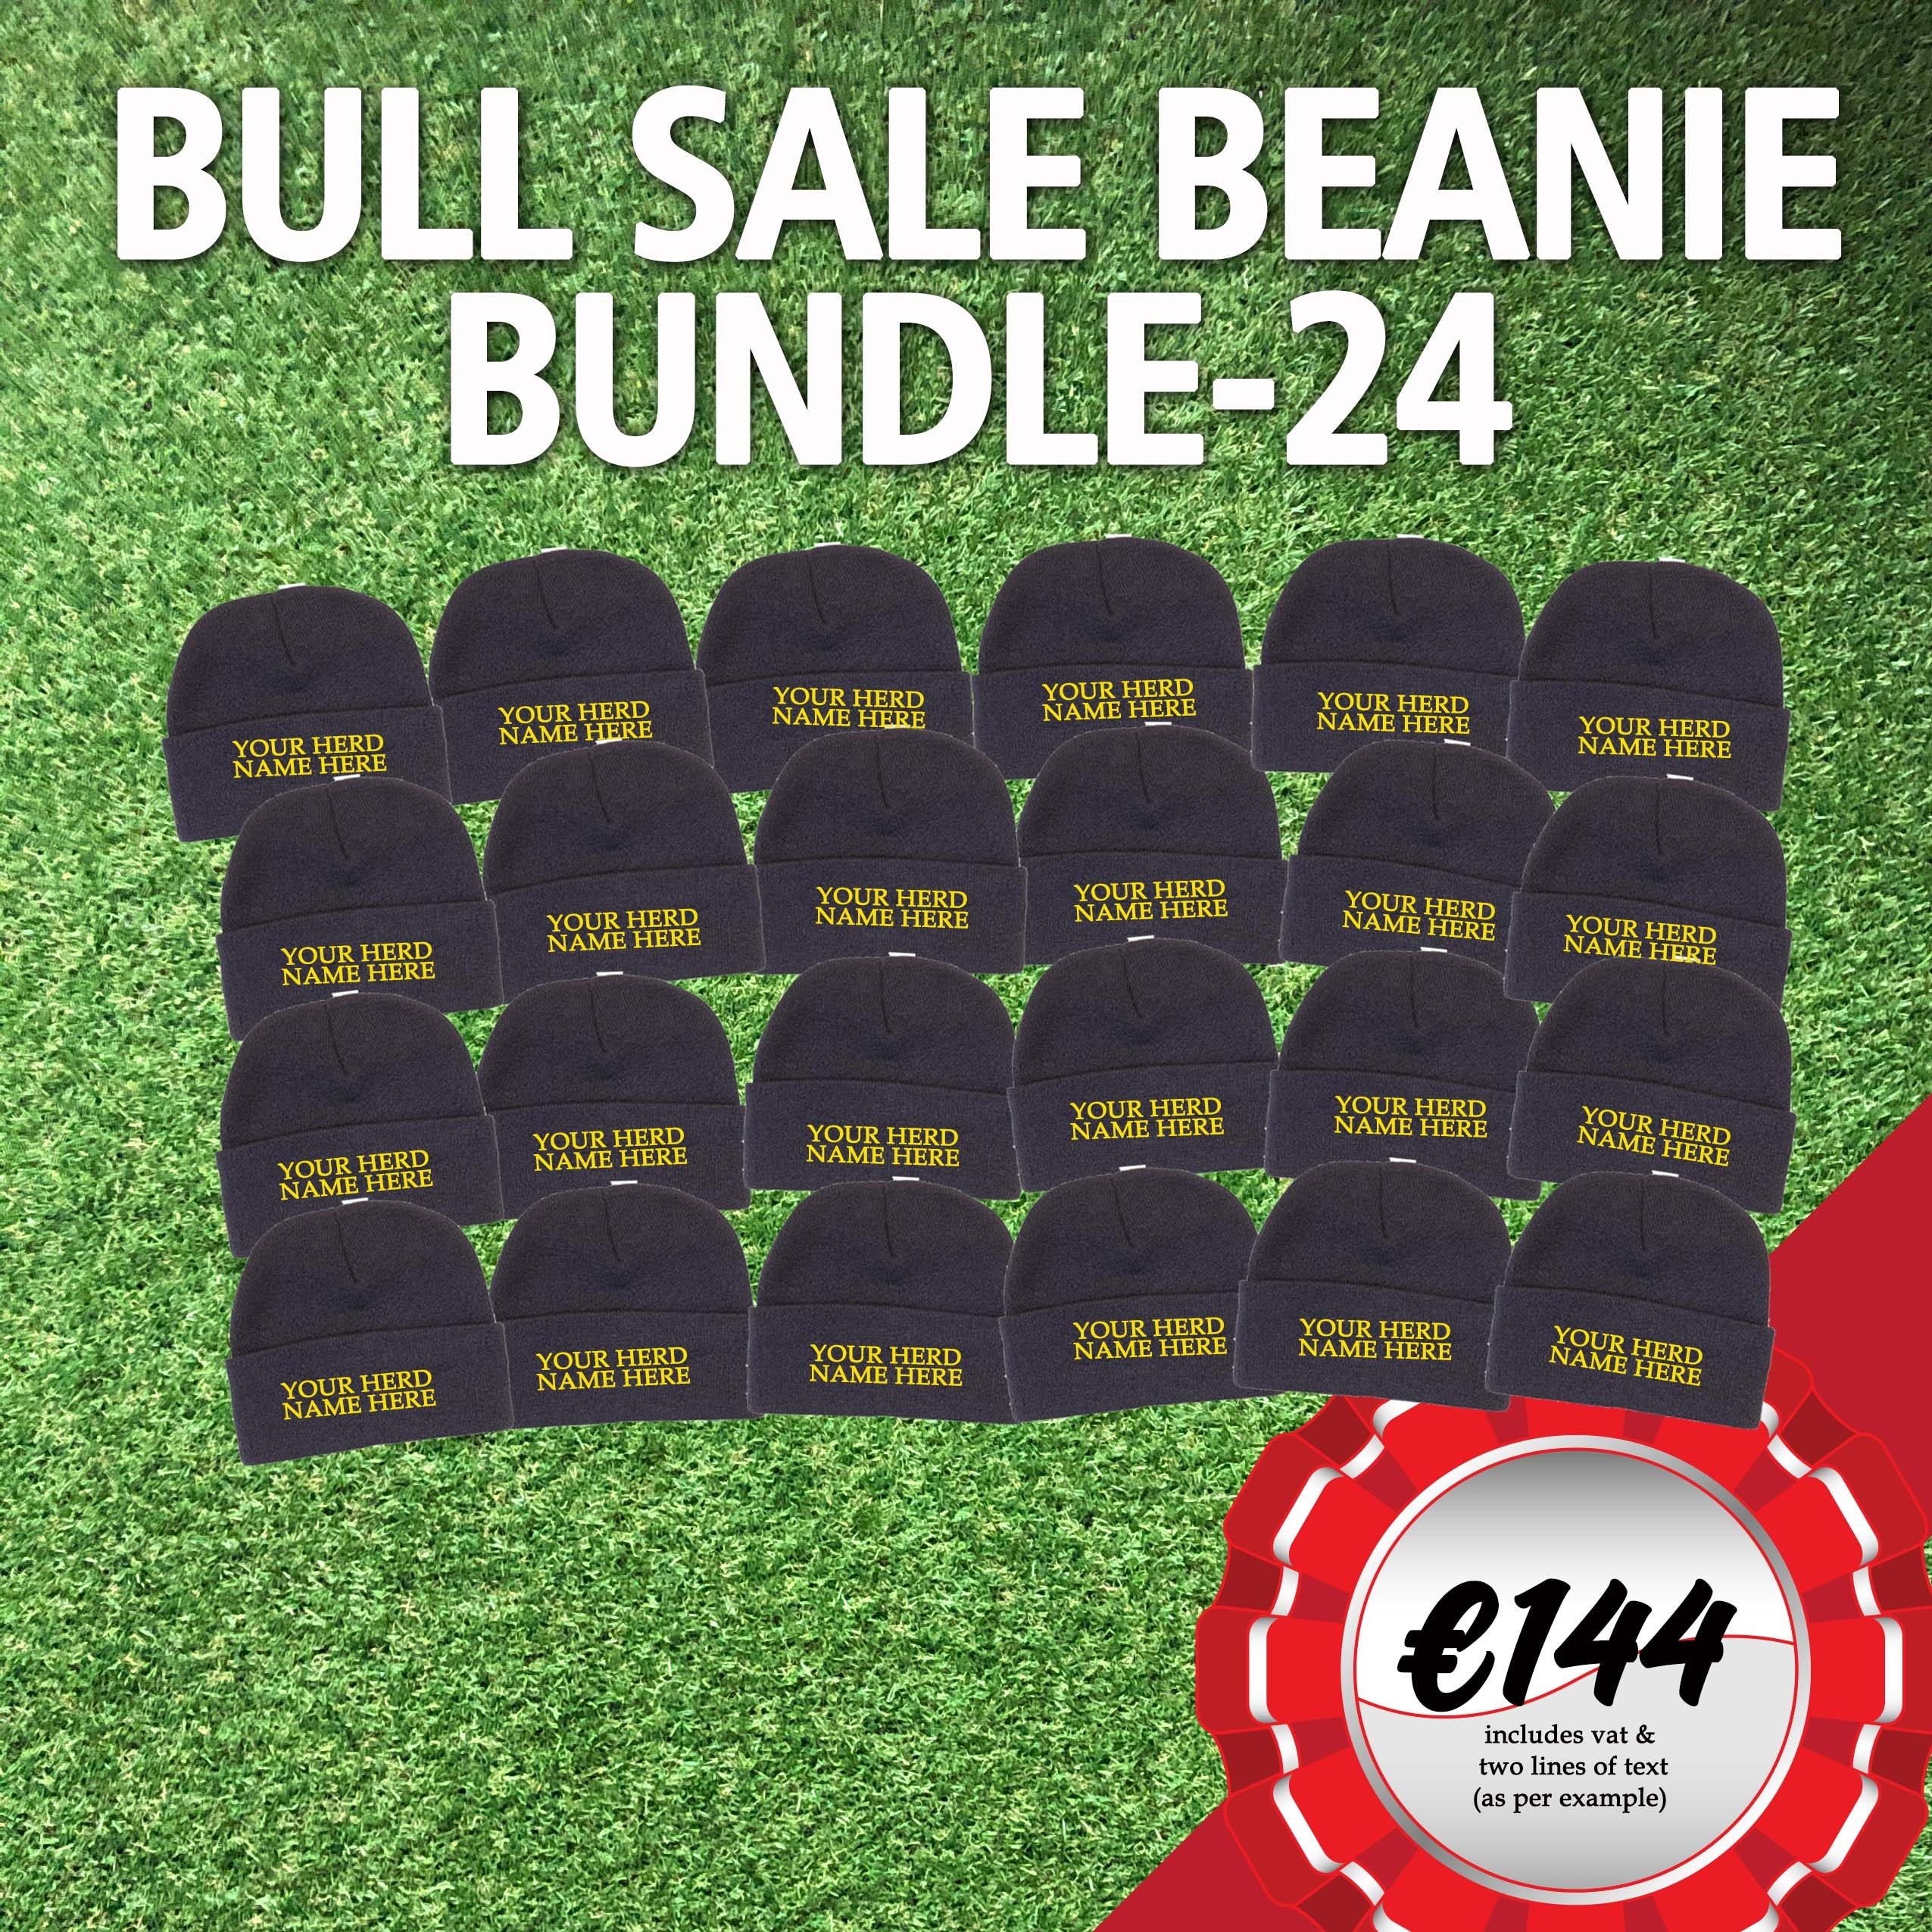 Bull Sale Bundle – 24 Beanies with your Herd Name